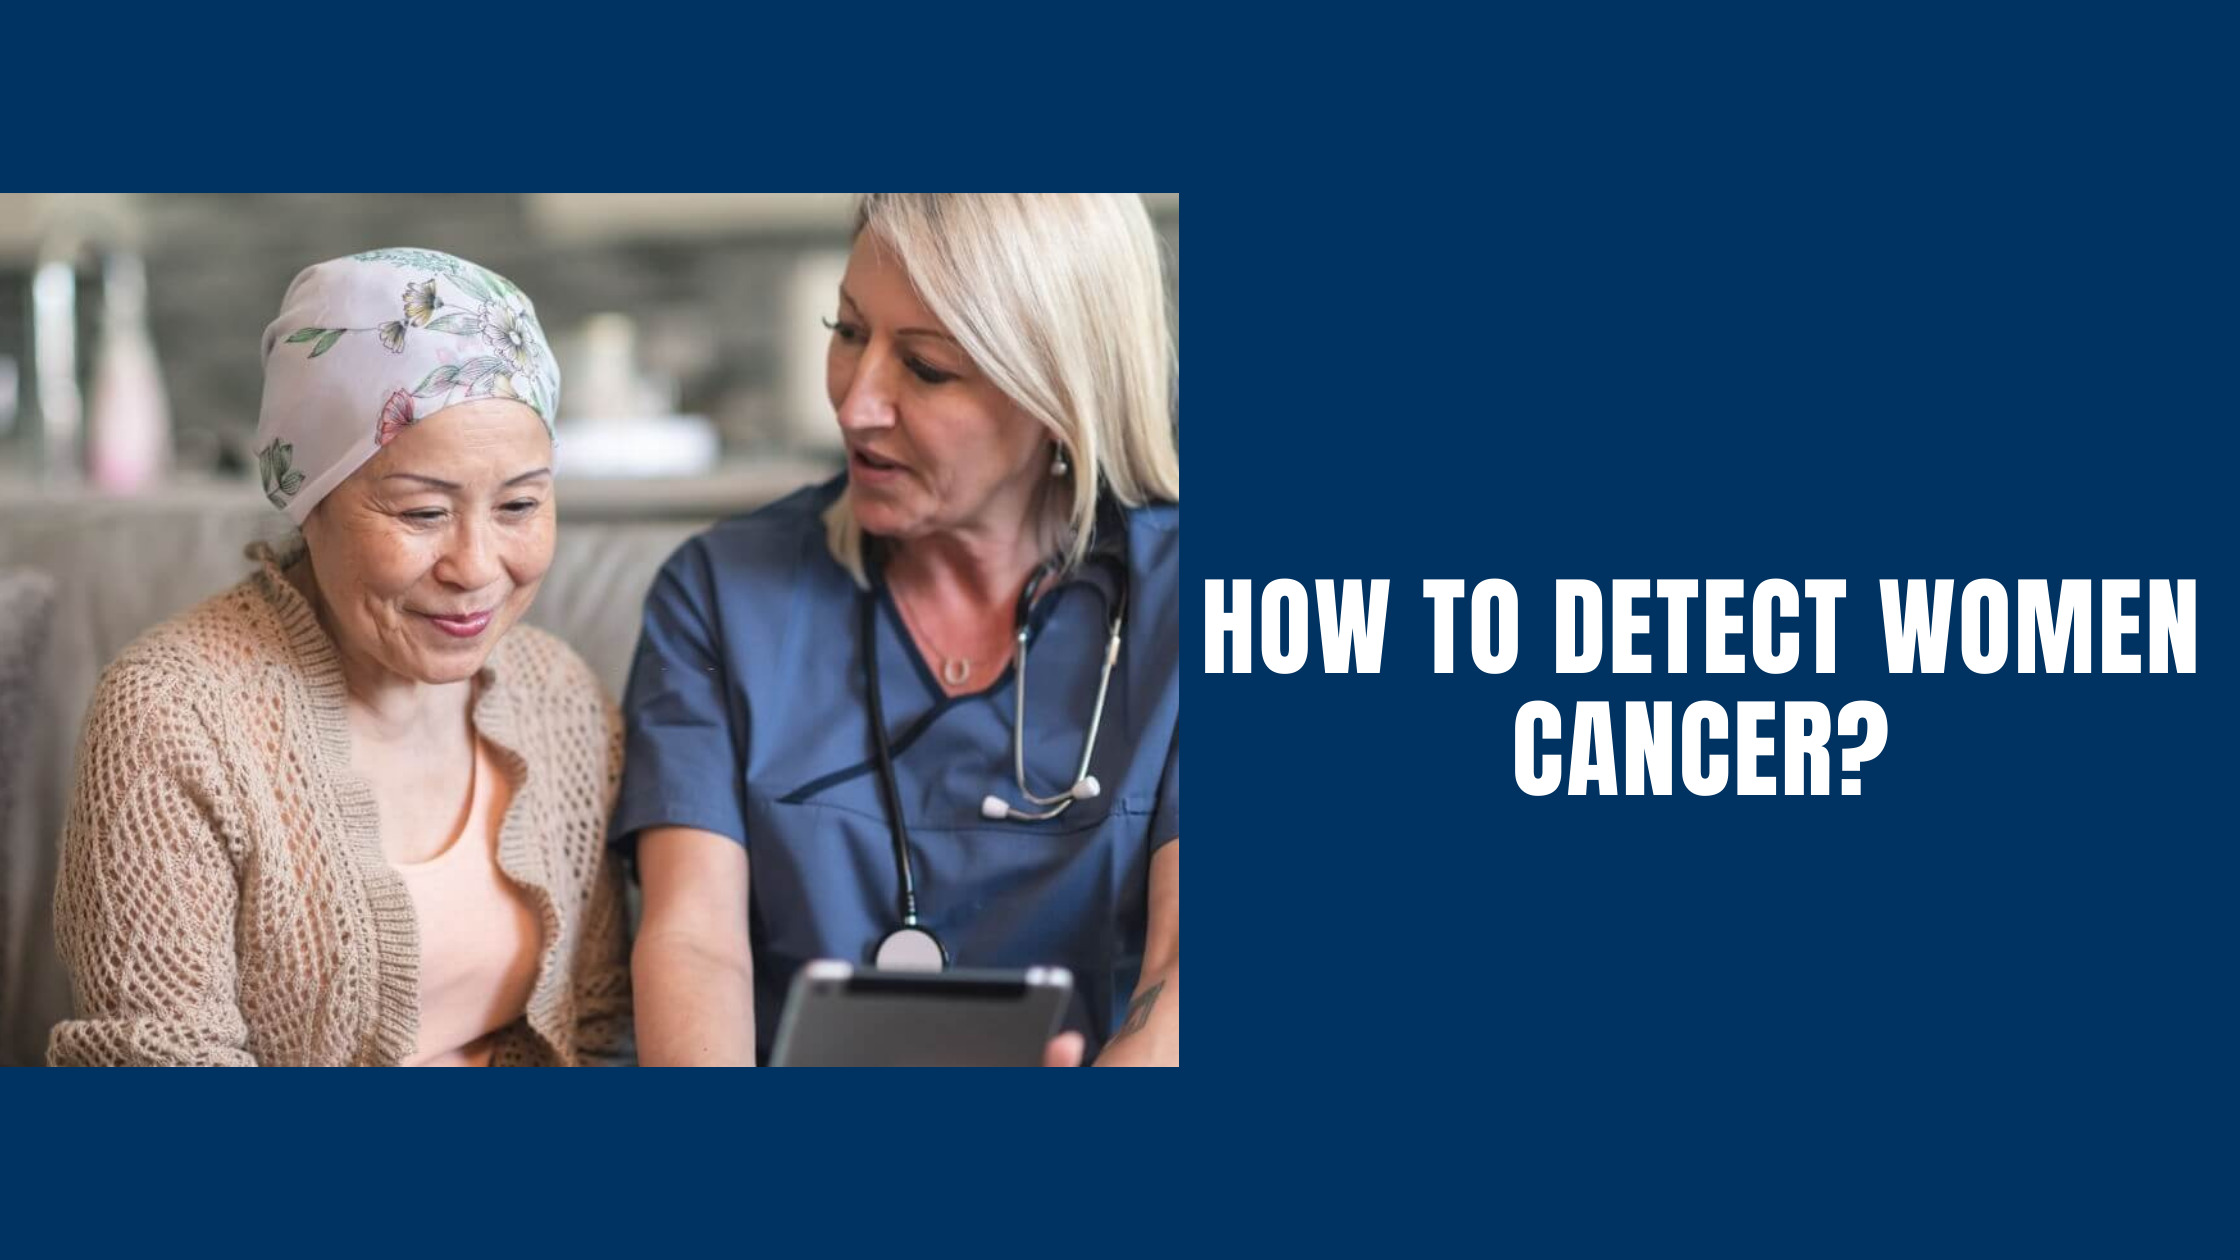 How To Detect Women Cancer?